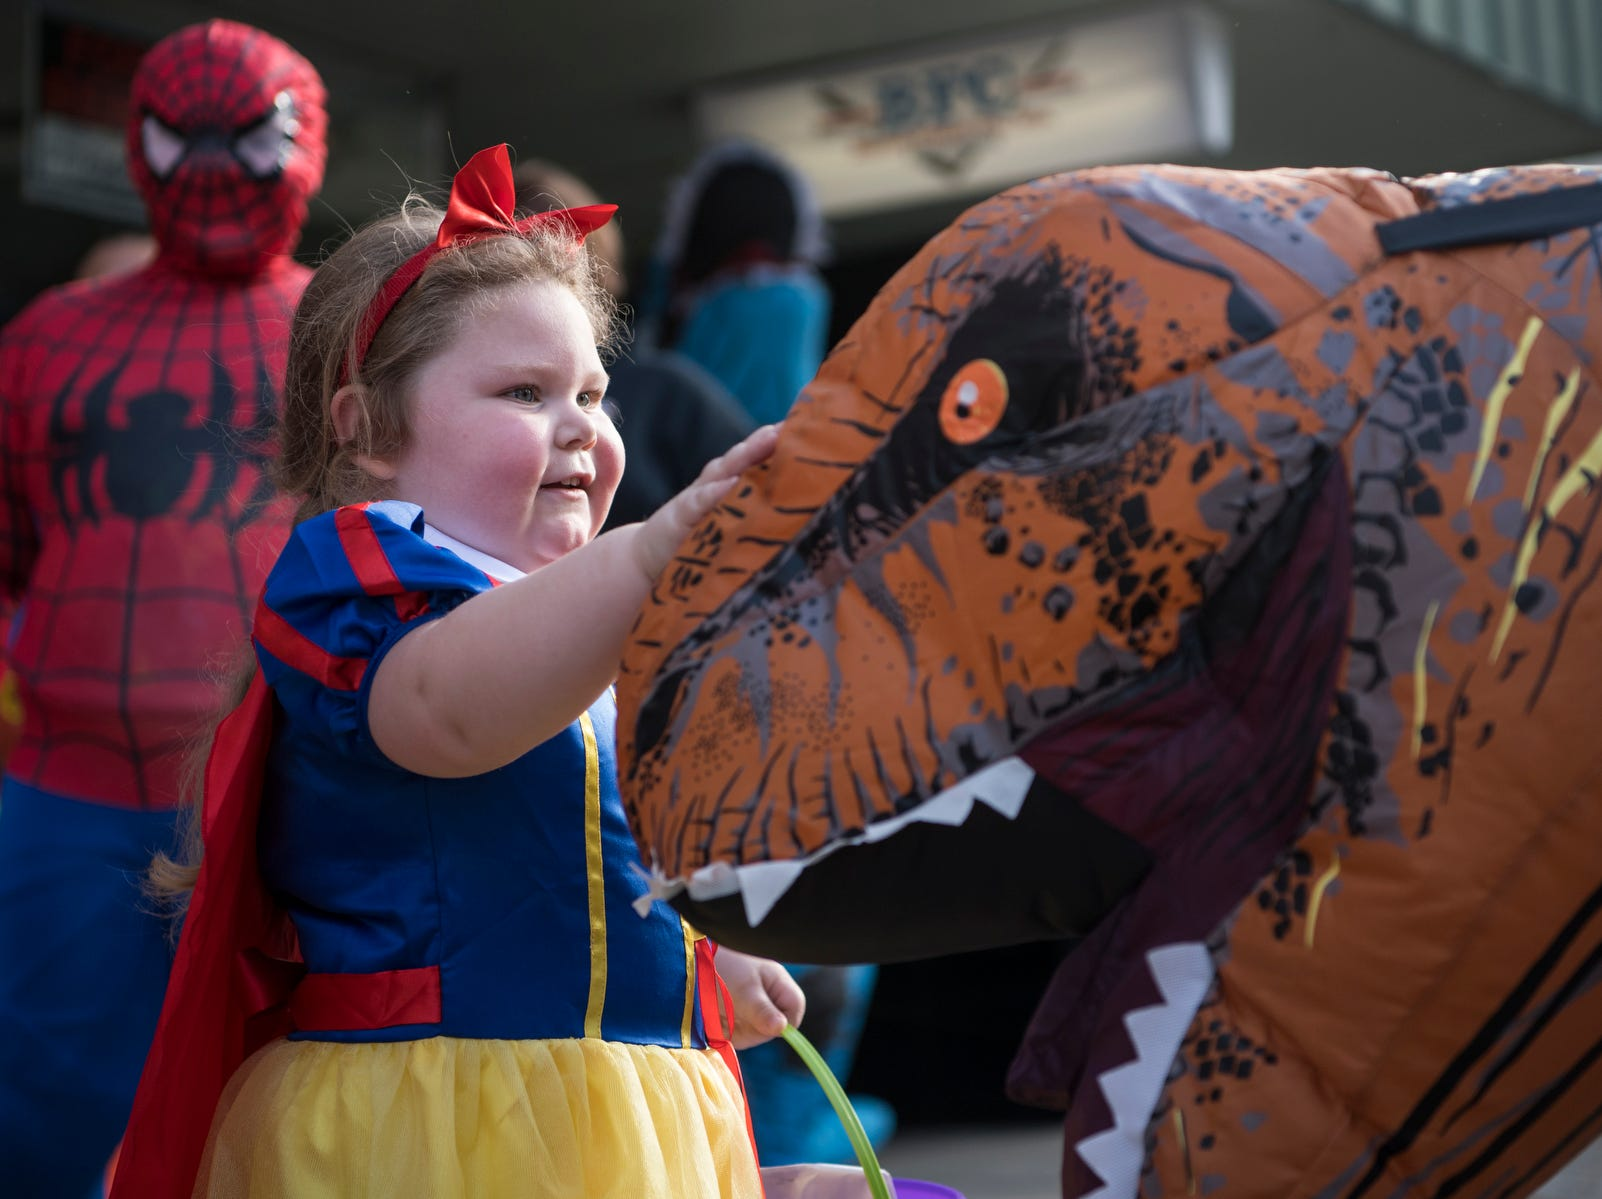 Avery Brummitt, 3, pets Whitney Floyd's inflatable dinosaur costume outside of Field and Main Insurance on North Main Street during the trick-or-treat event in downtown Henderson, Ky., Tuesday, Oct. 30, 2018. Field and Main Insurance employees displayed a Jurassic Park theme as they passed out candy to the children walking by.